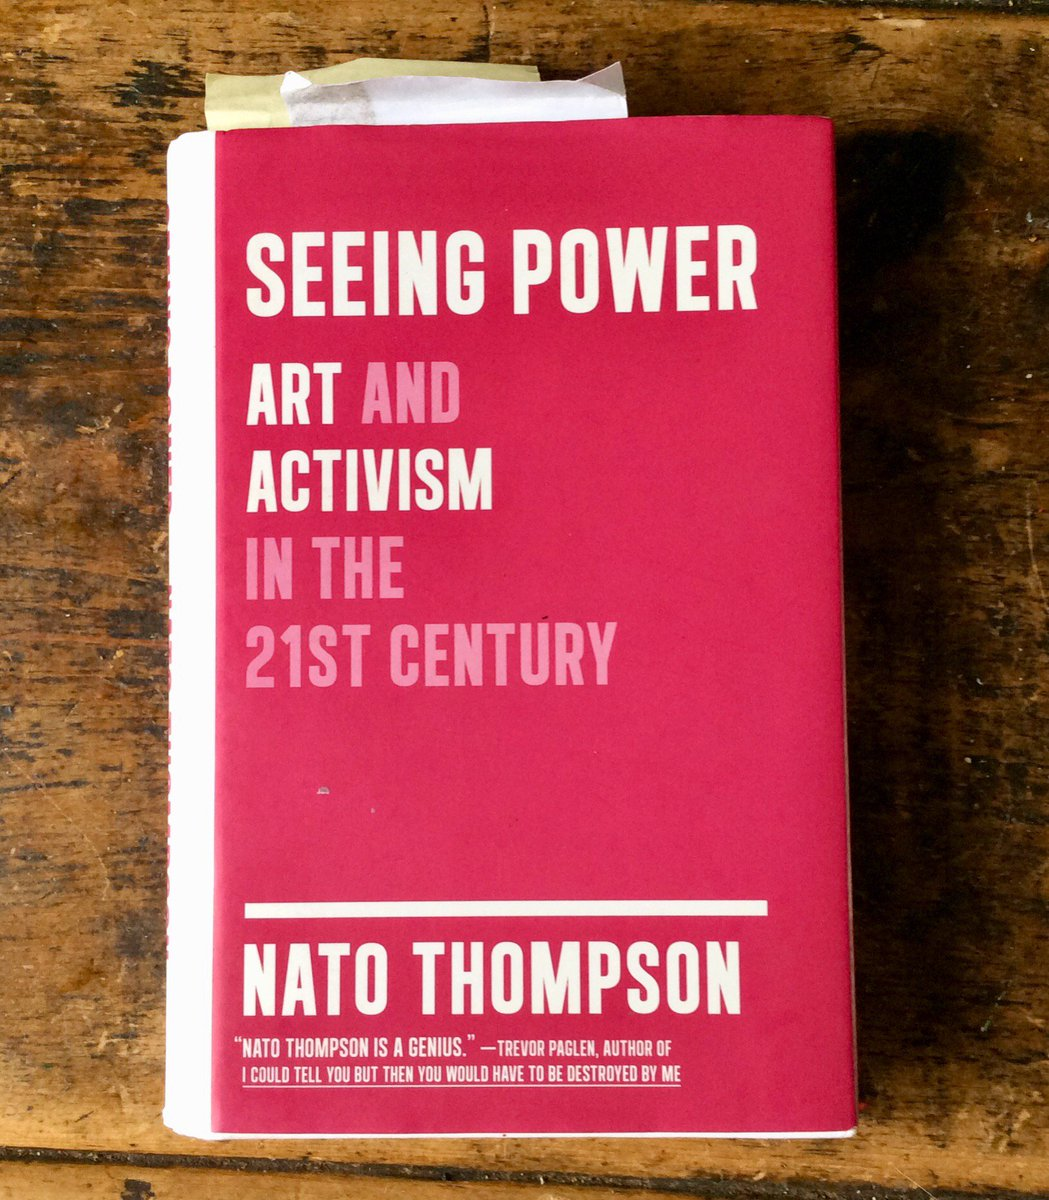 Here's the first suggestion for @CommonwealUK  in response to our tweet asking for recommendations of books on ways to make the world a better place. Thank you, Jean ❤️ #activism #nonviolence #amreading